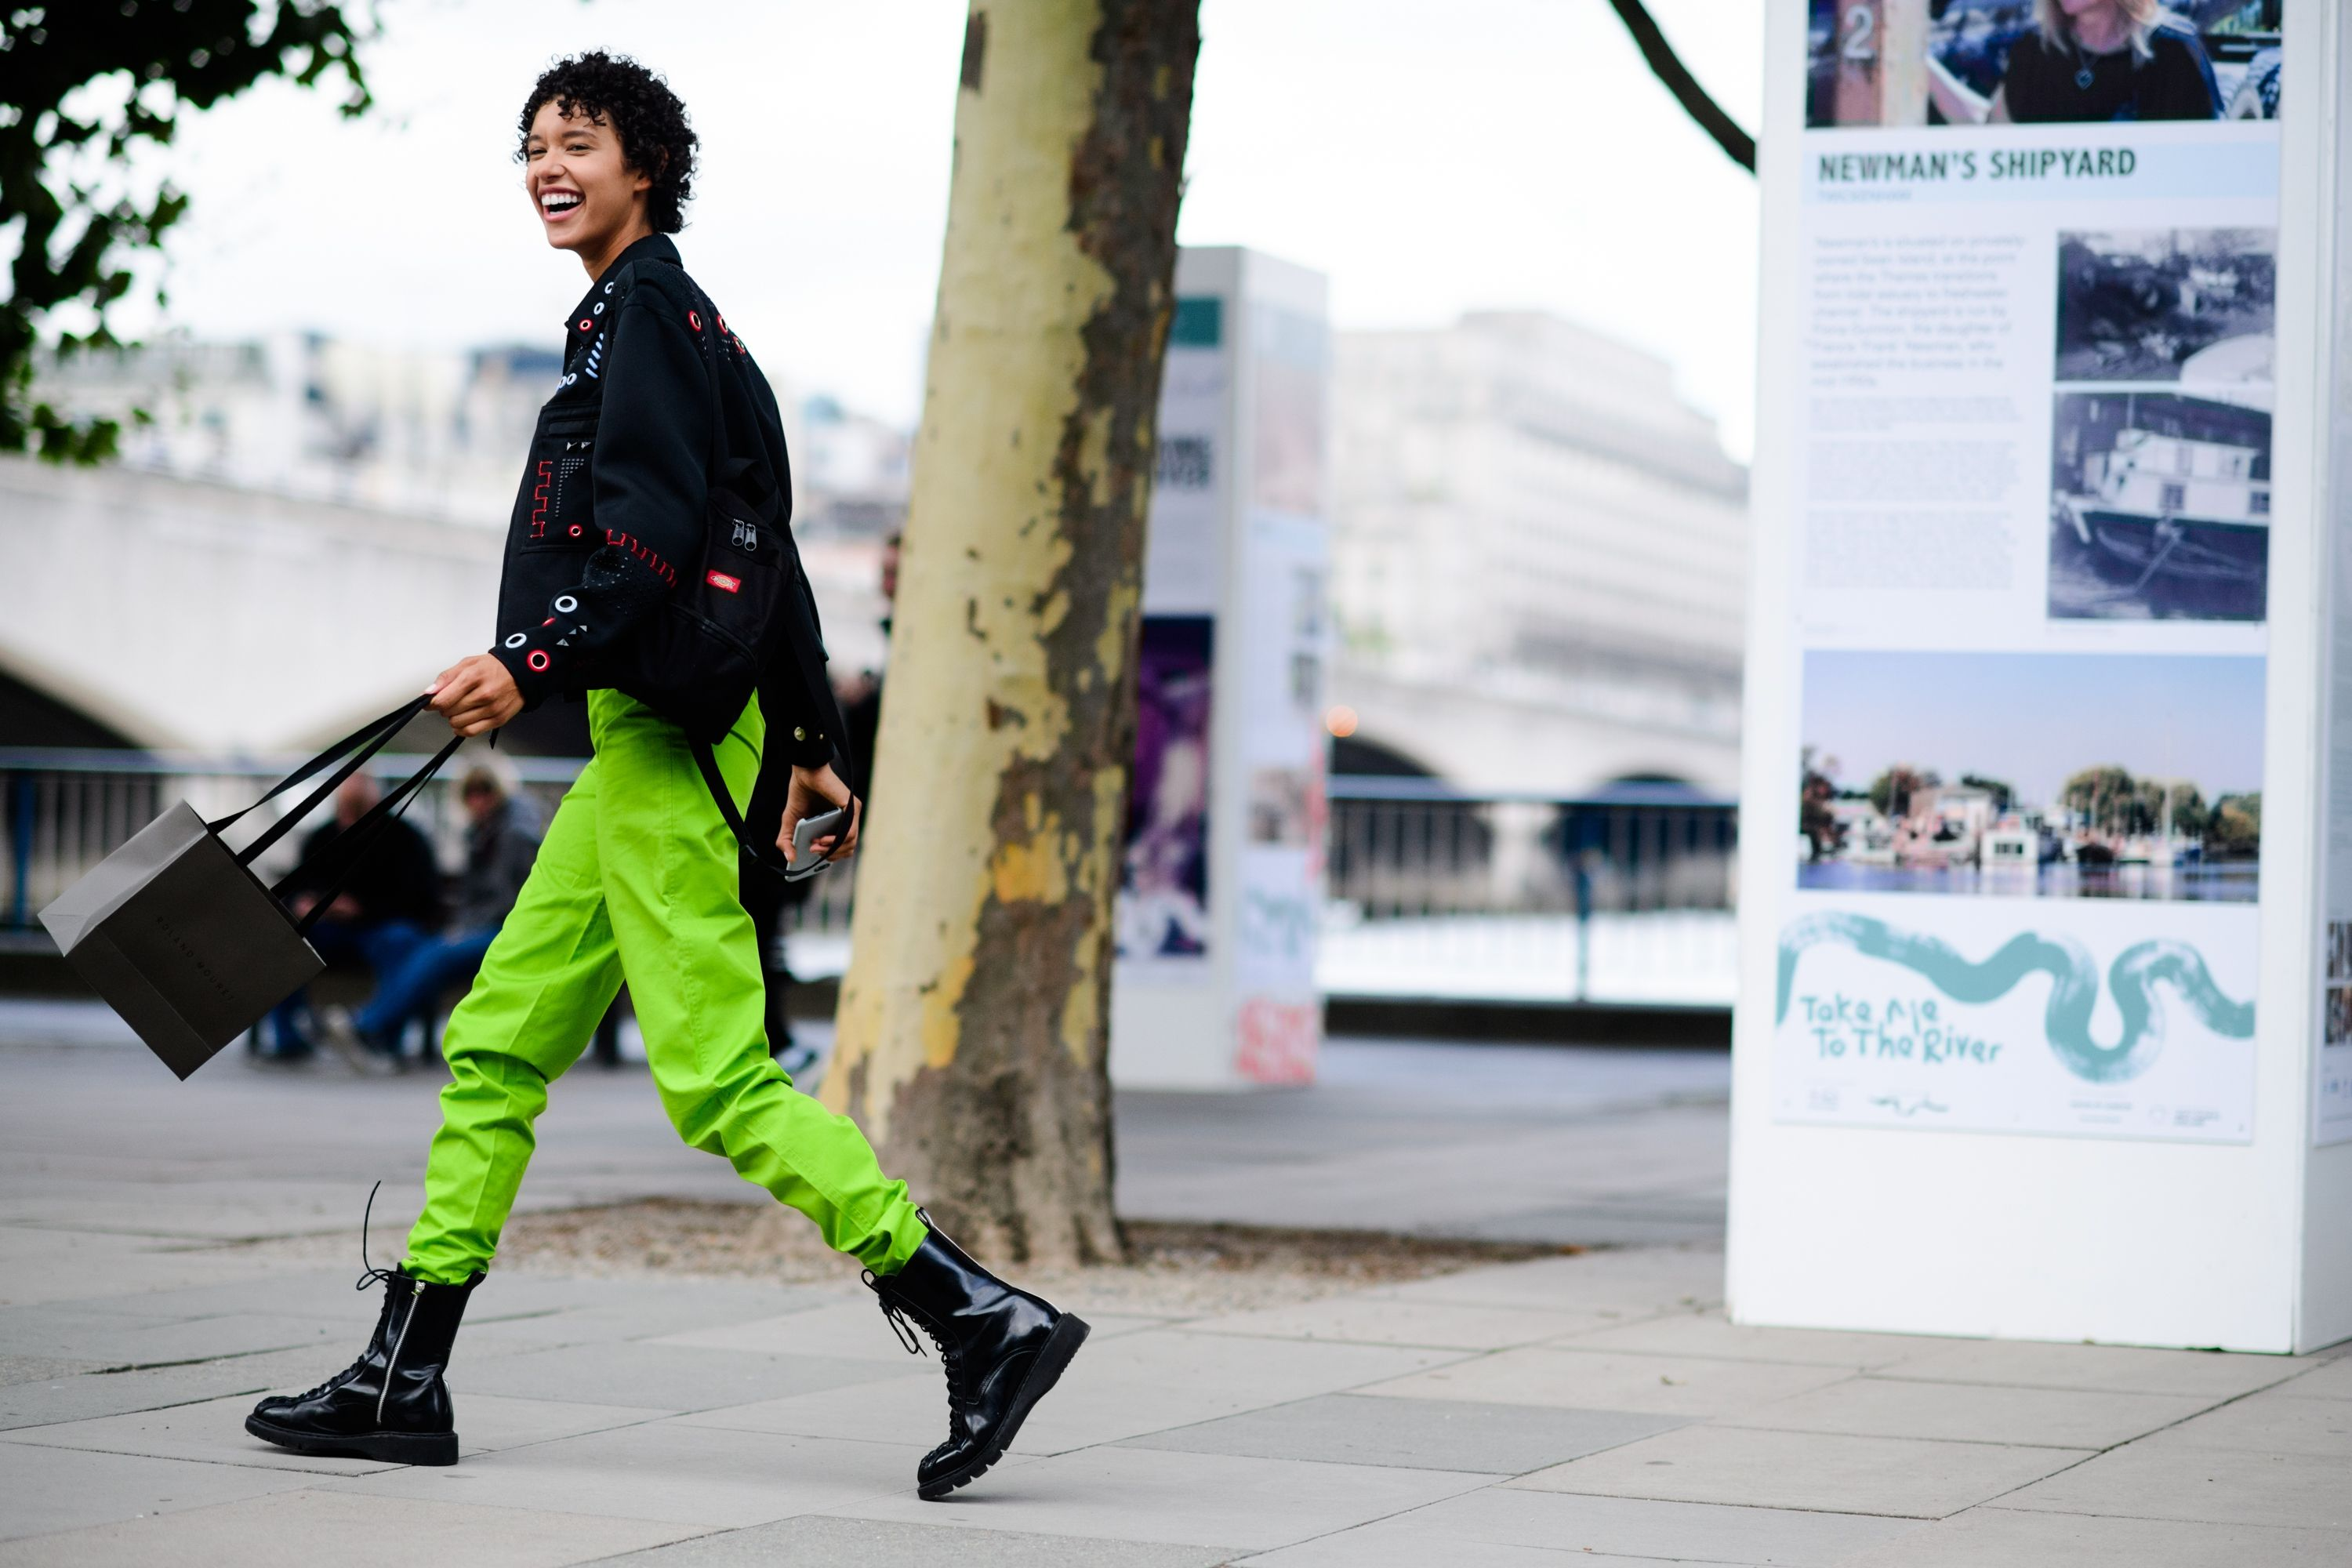 london-lfw-street-style-ss18-day-2-tyler-joe-078-1505754159